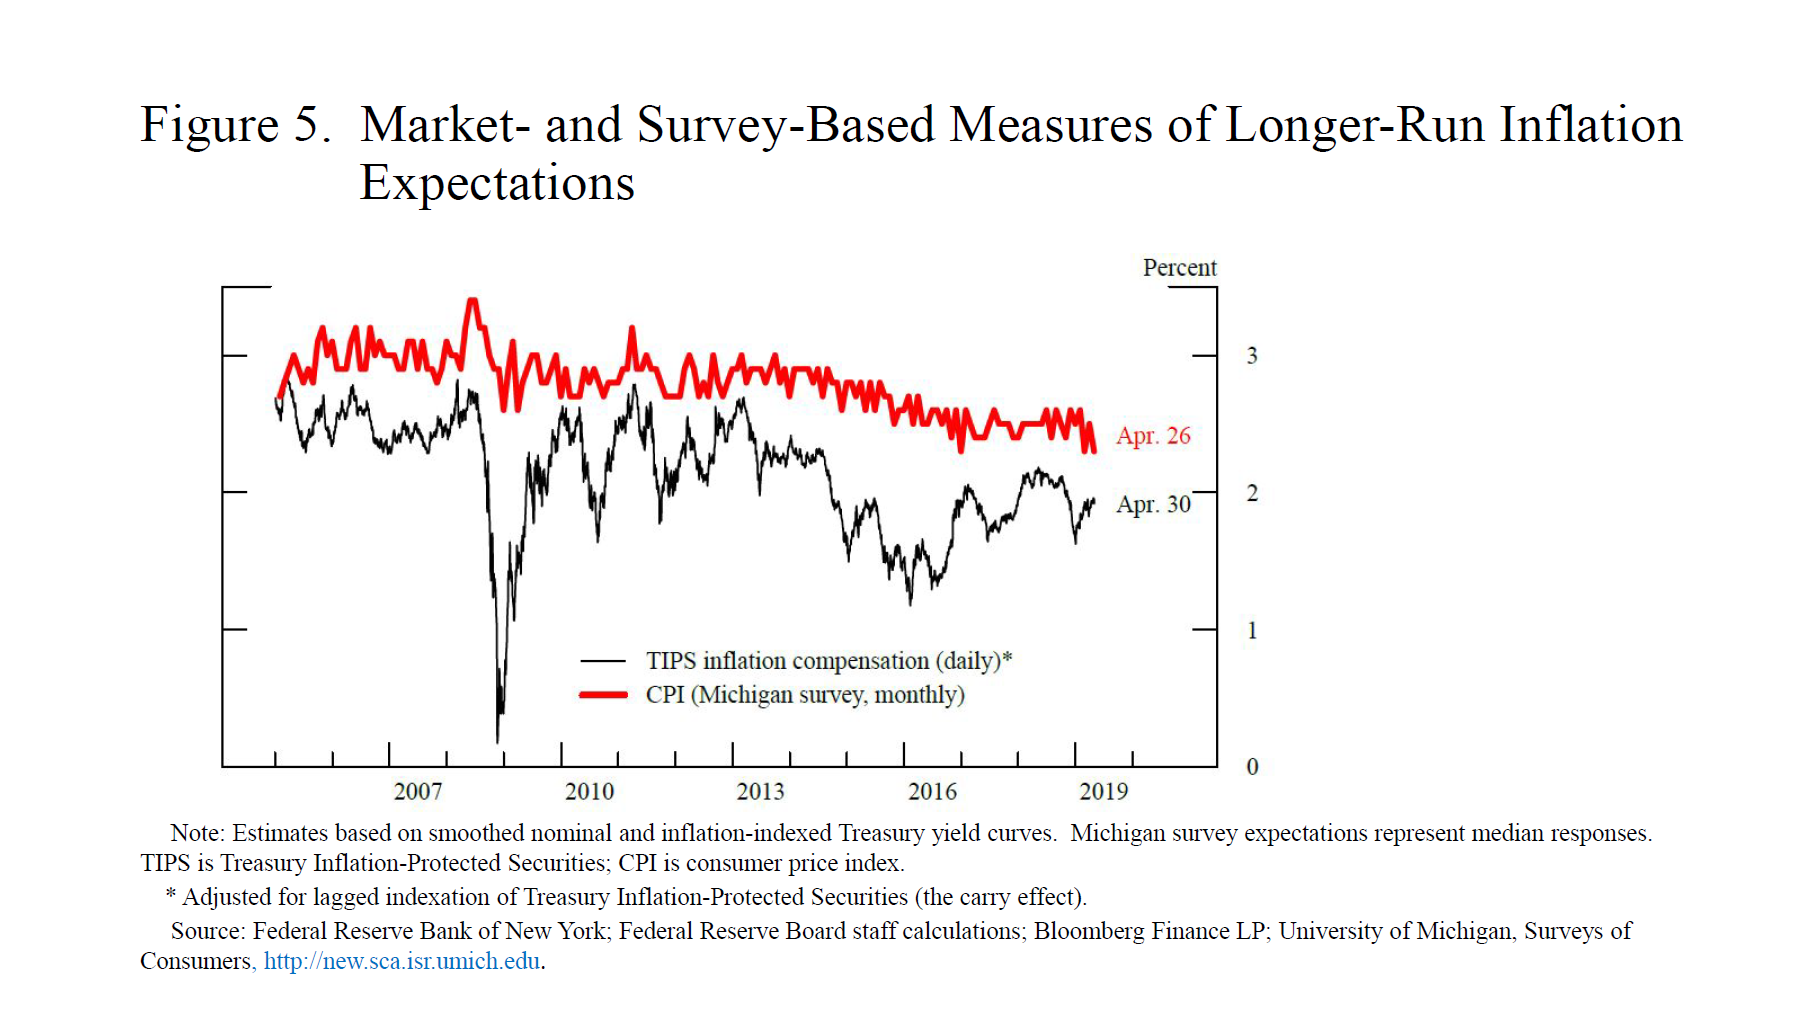 Federal Reserve Board - Models, Markets, and Monetary Policy